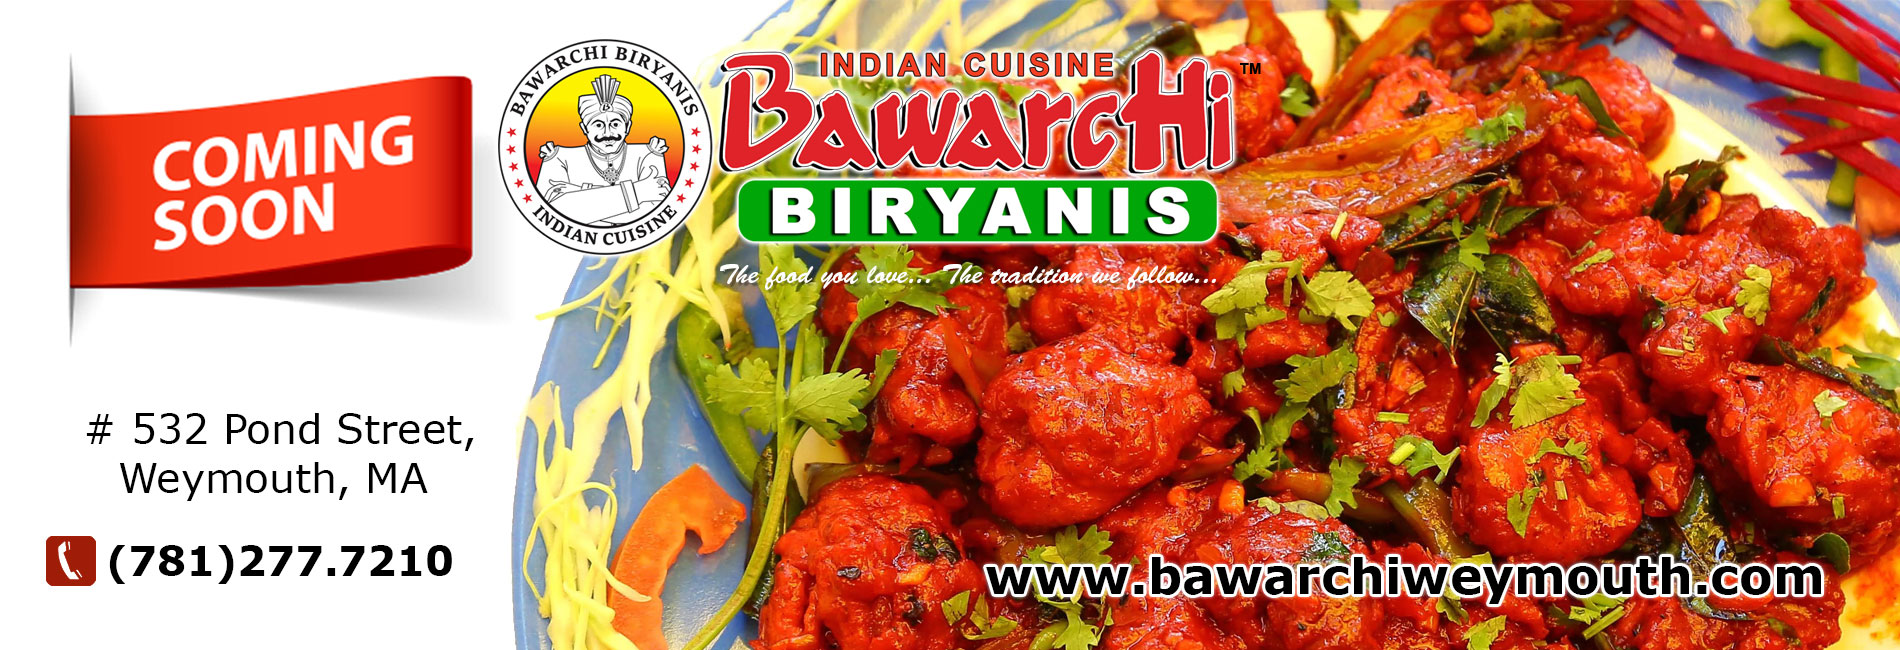 Bawarchi coming soon location - Weymouth, MA